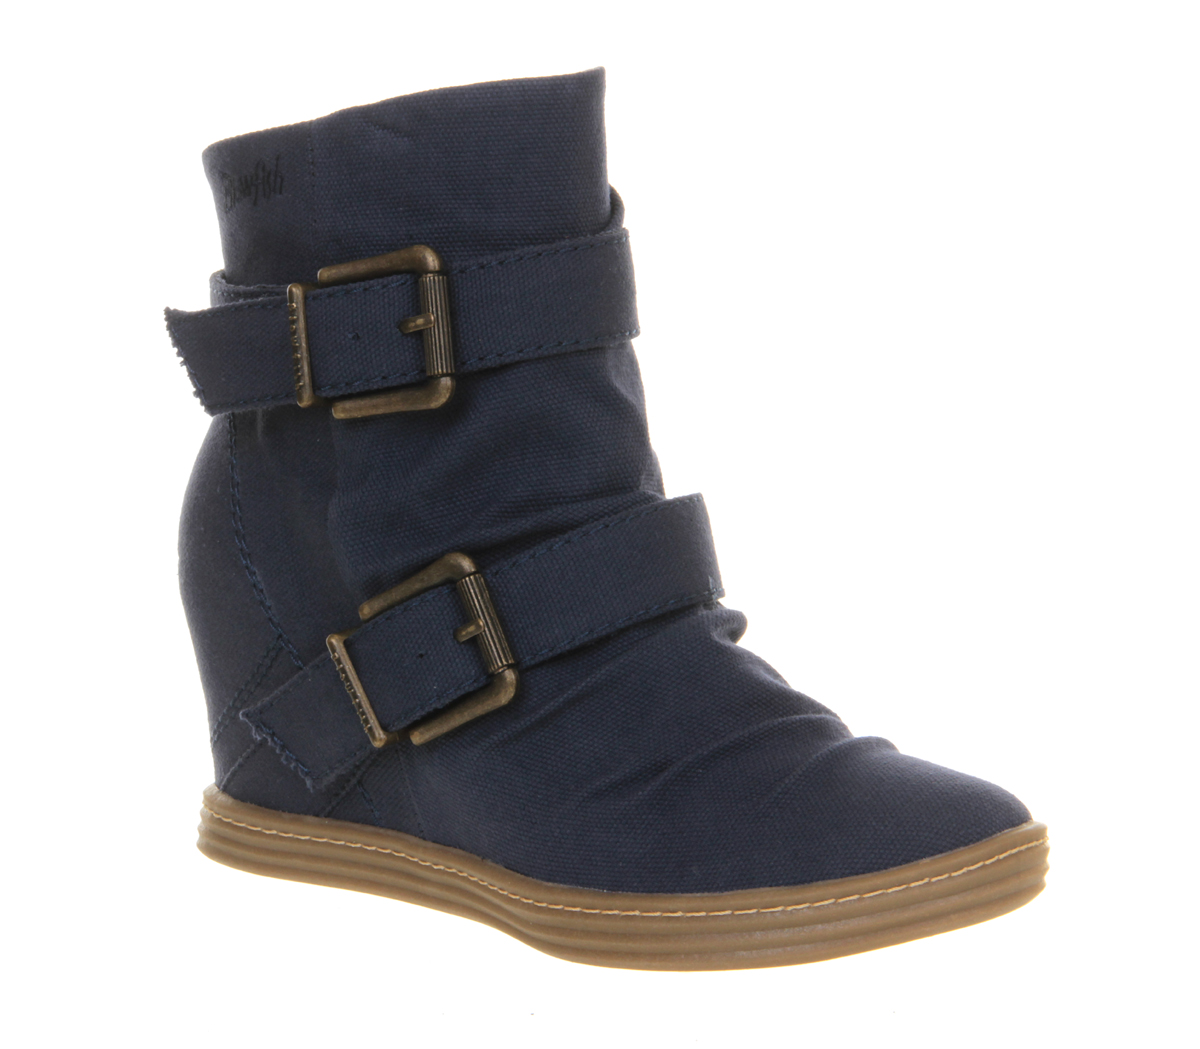 Wedge Canvas Shoes Uk